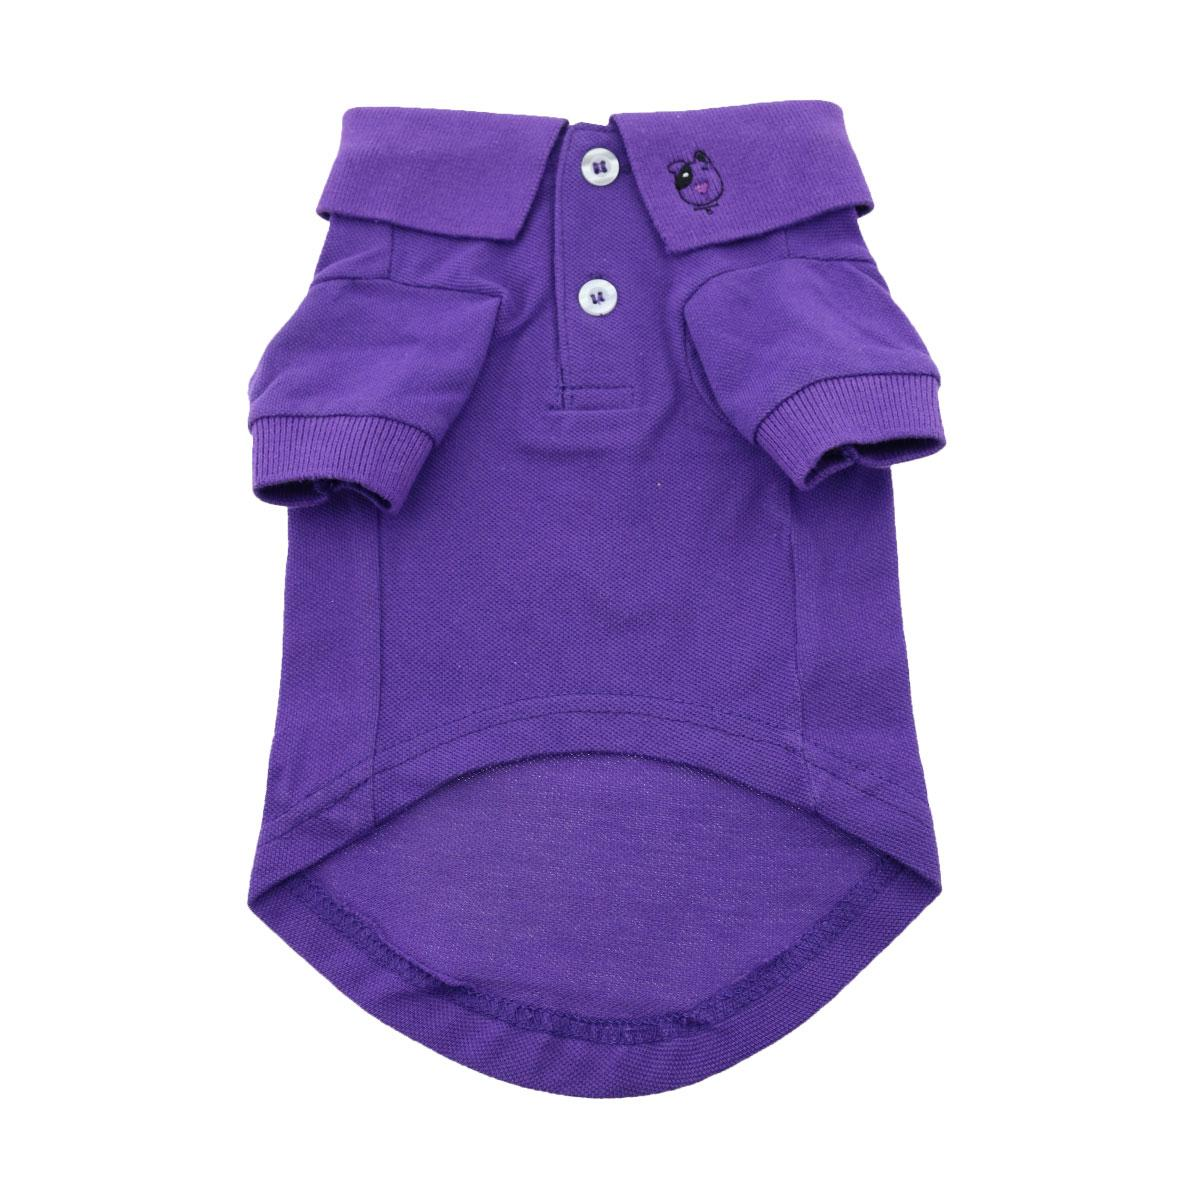 Doggie Design Polo Shirt for Dogs, Solid Ultra Violet, 3X-Large